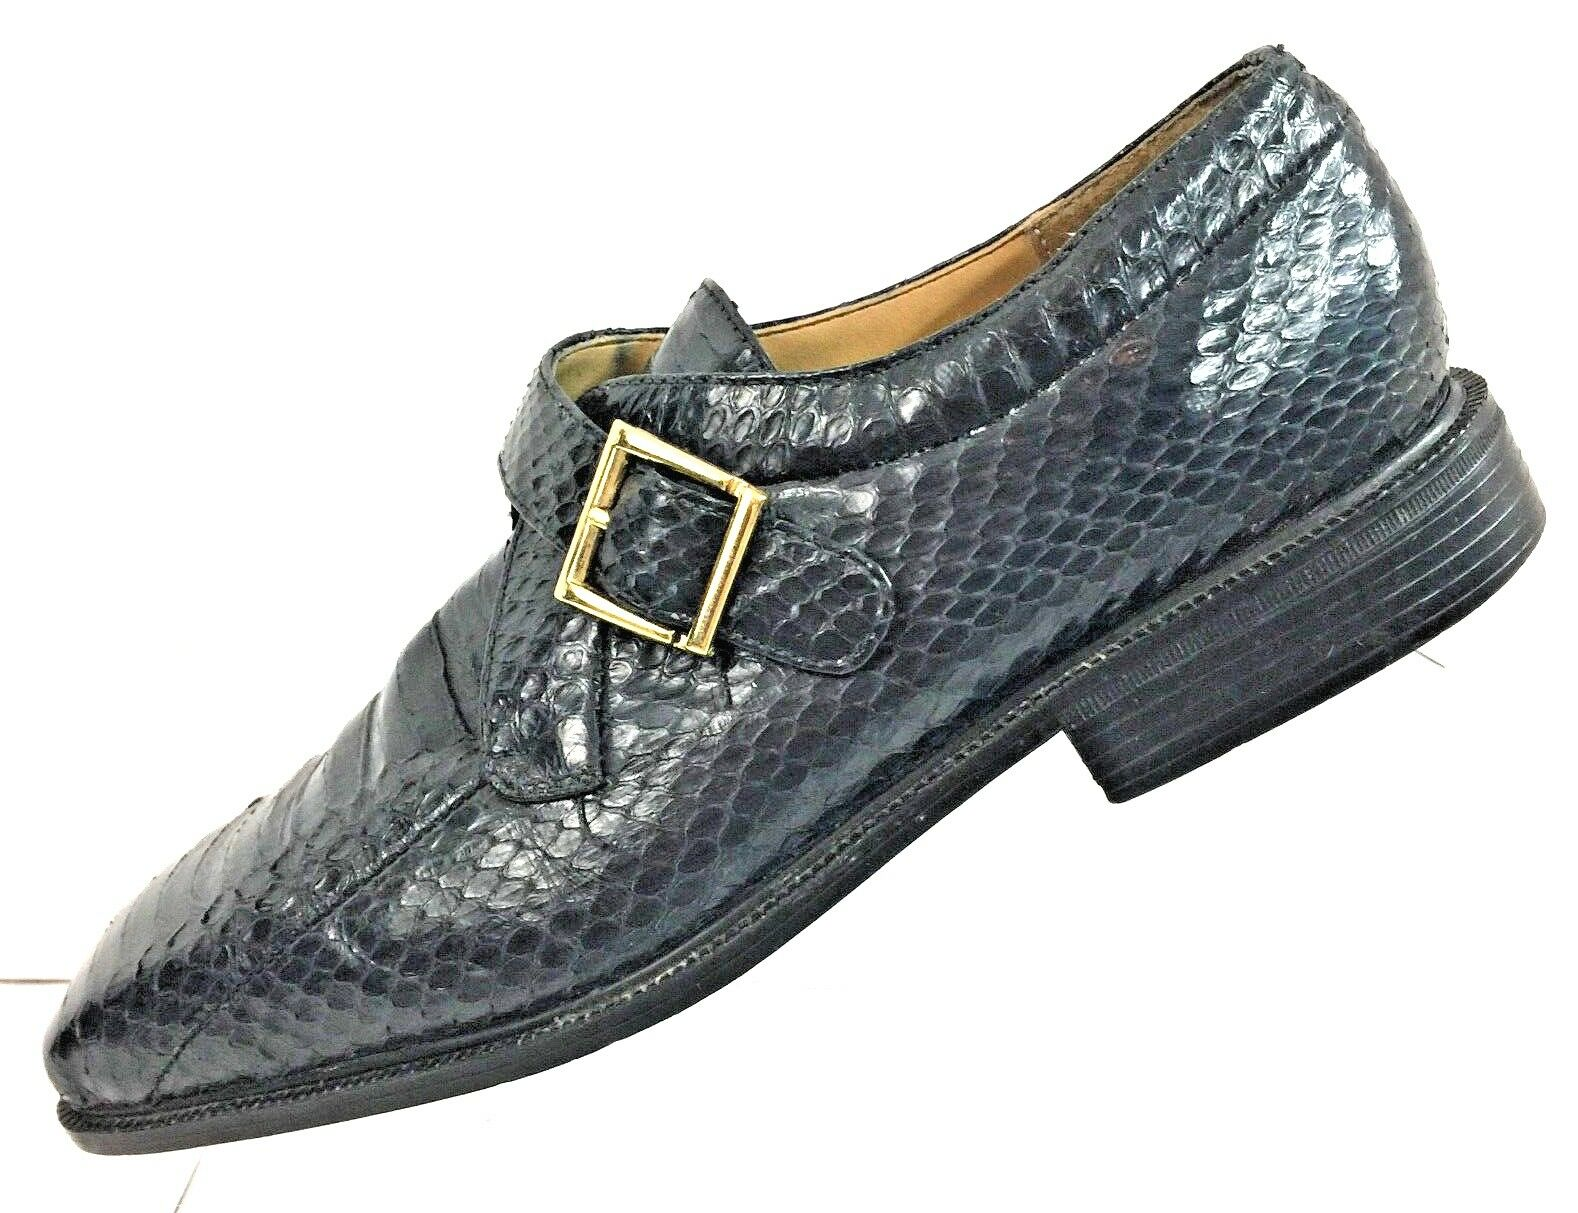 Giorgio Brutini Men's Genuine Snake Skin Loafers Navy bluee shoes Size 8.5M